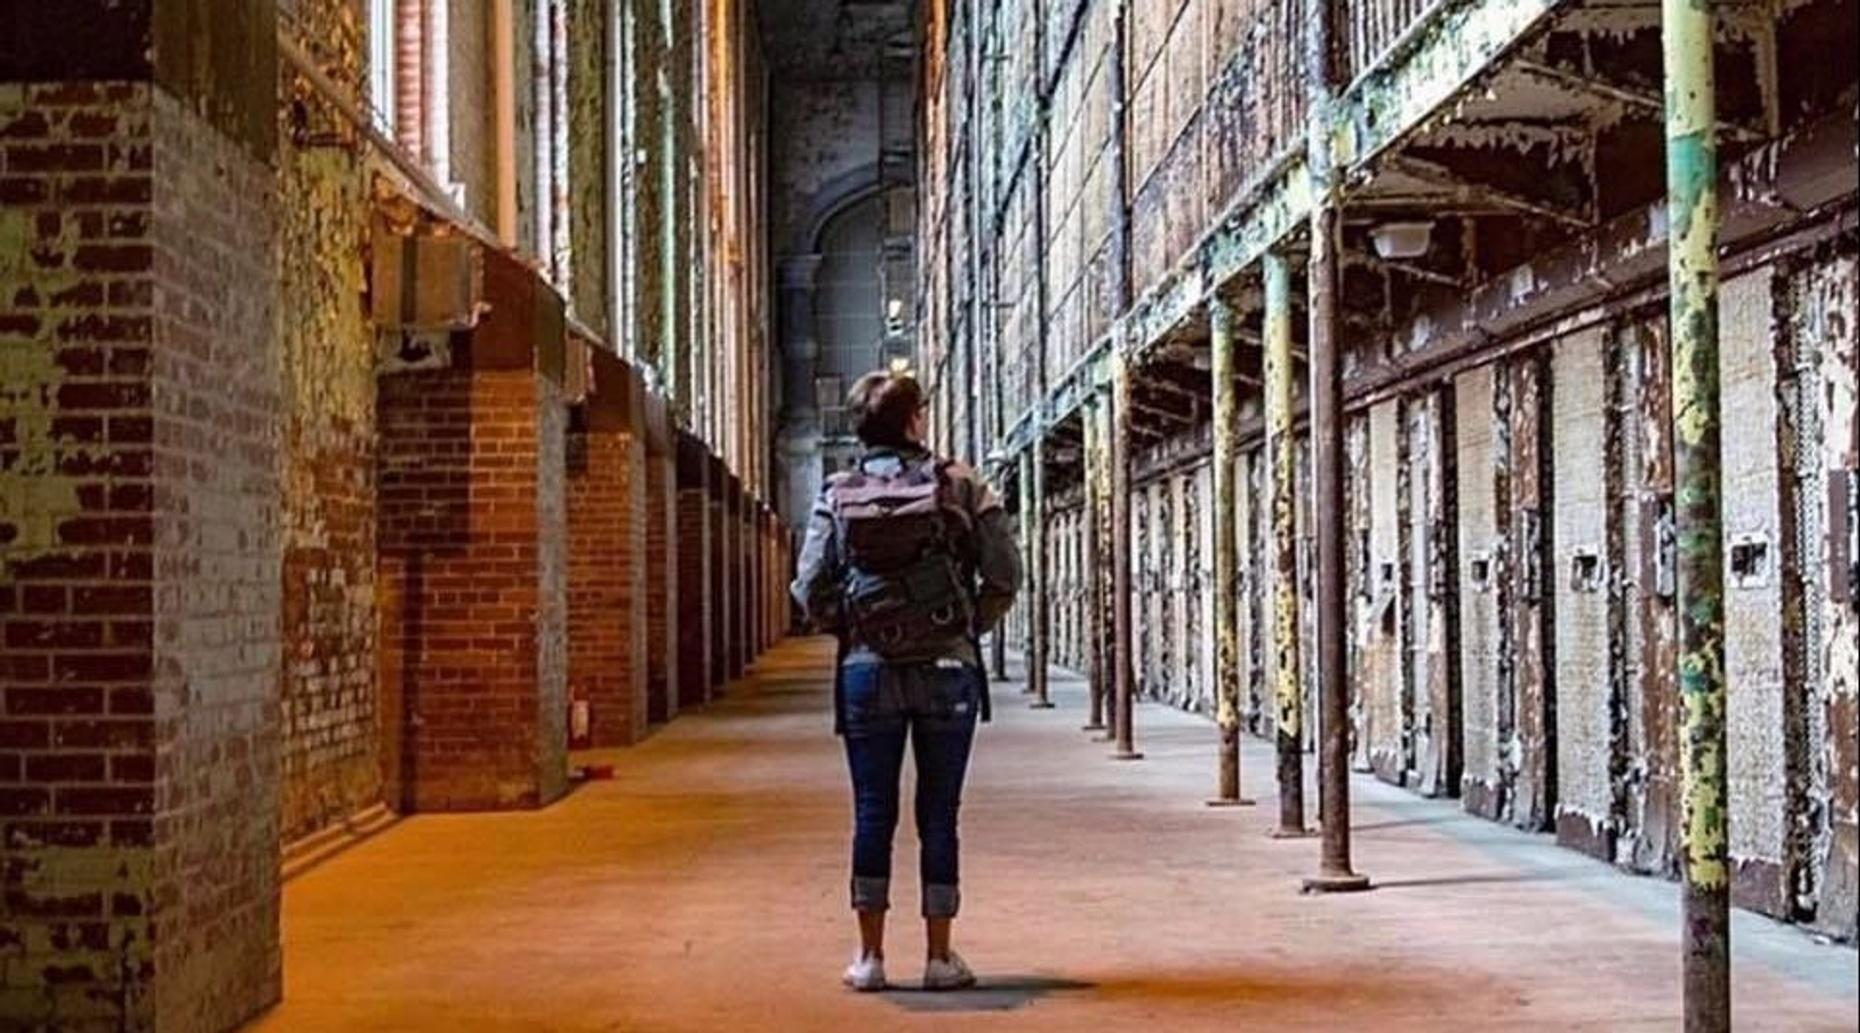 The Ohio State Reformatory Self-Guided Tour